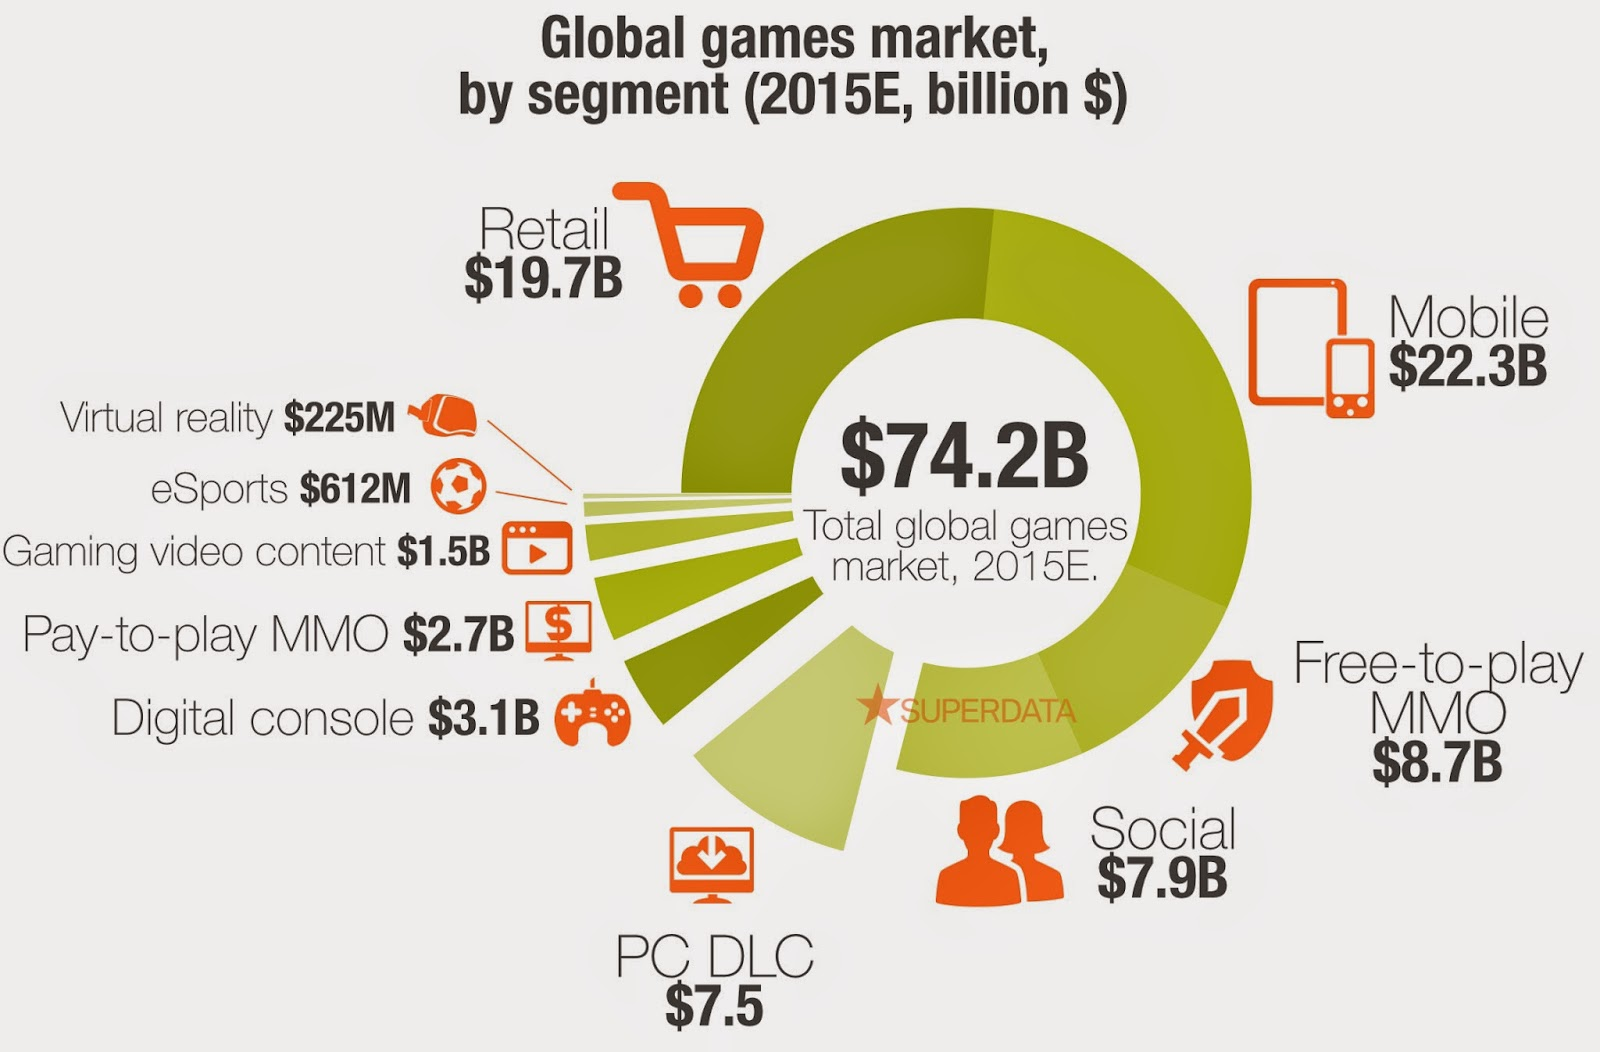 SuperData Research Releases Global Games Market 2015 Report